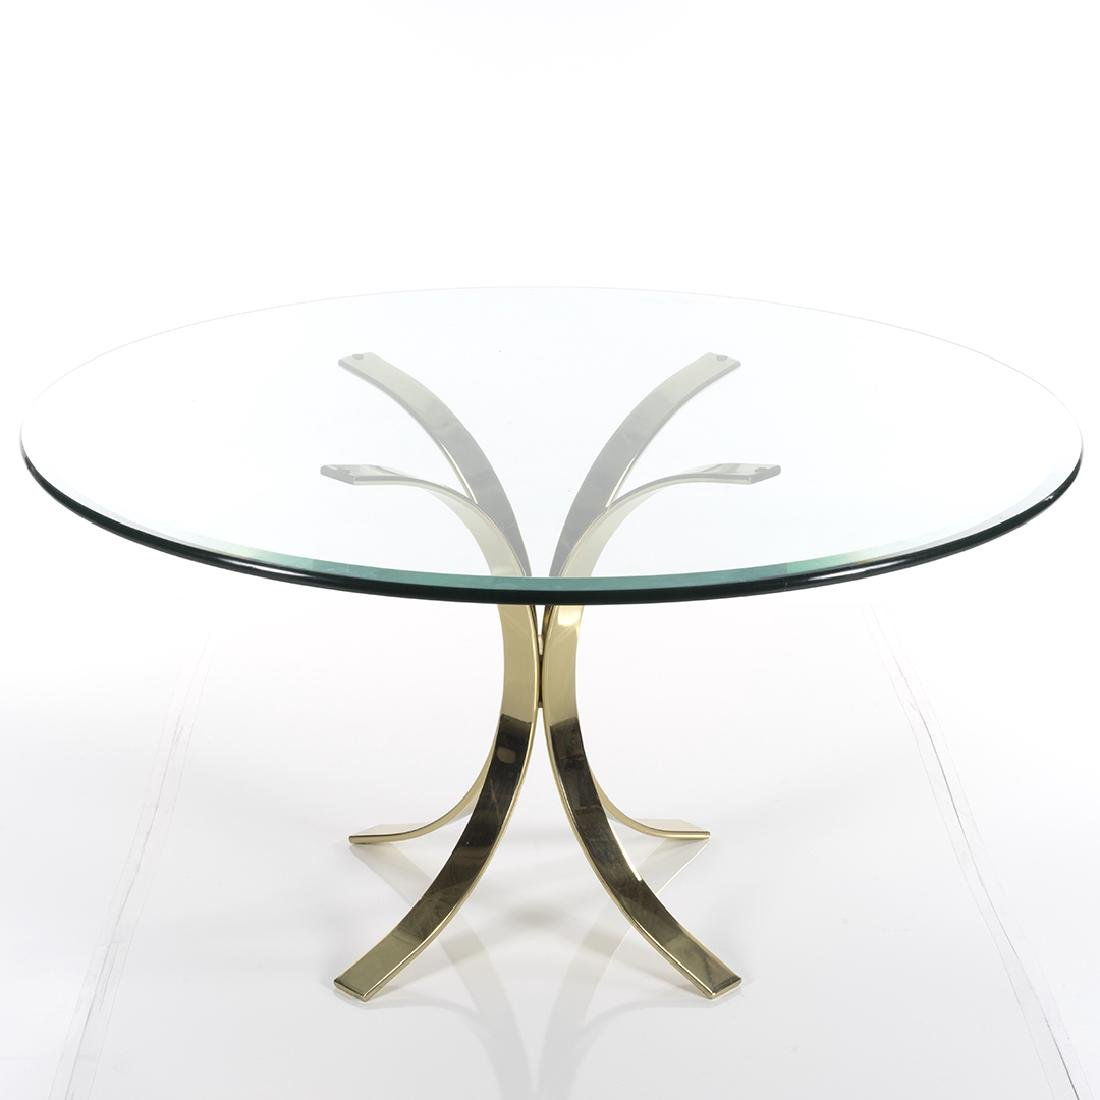 Brass Dining Table - 2